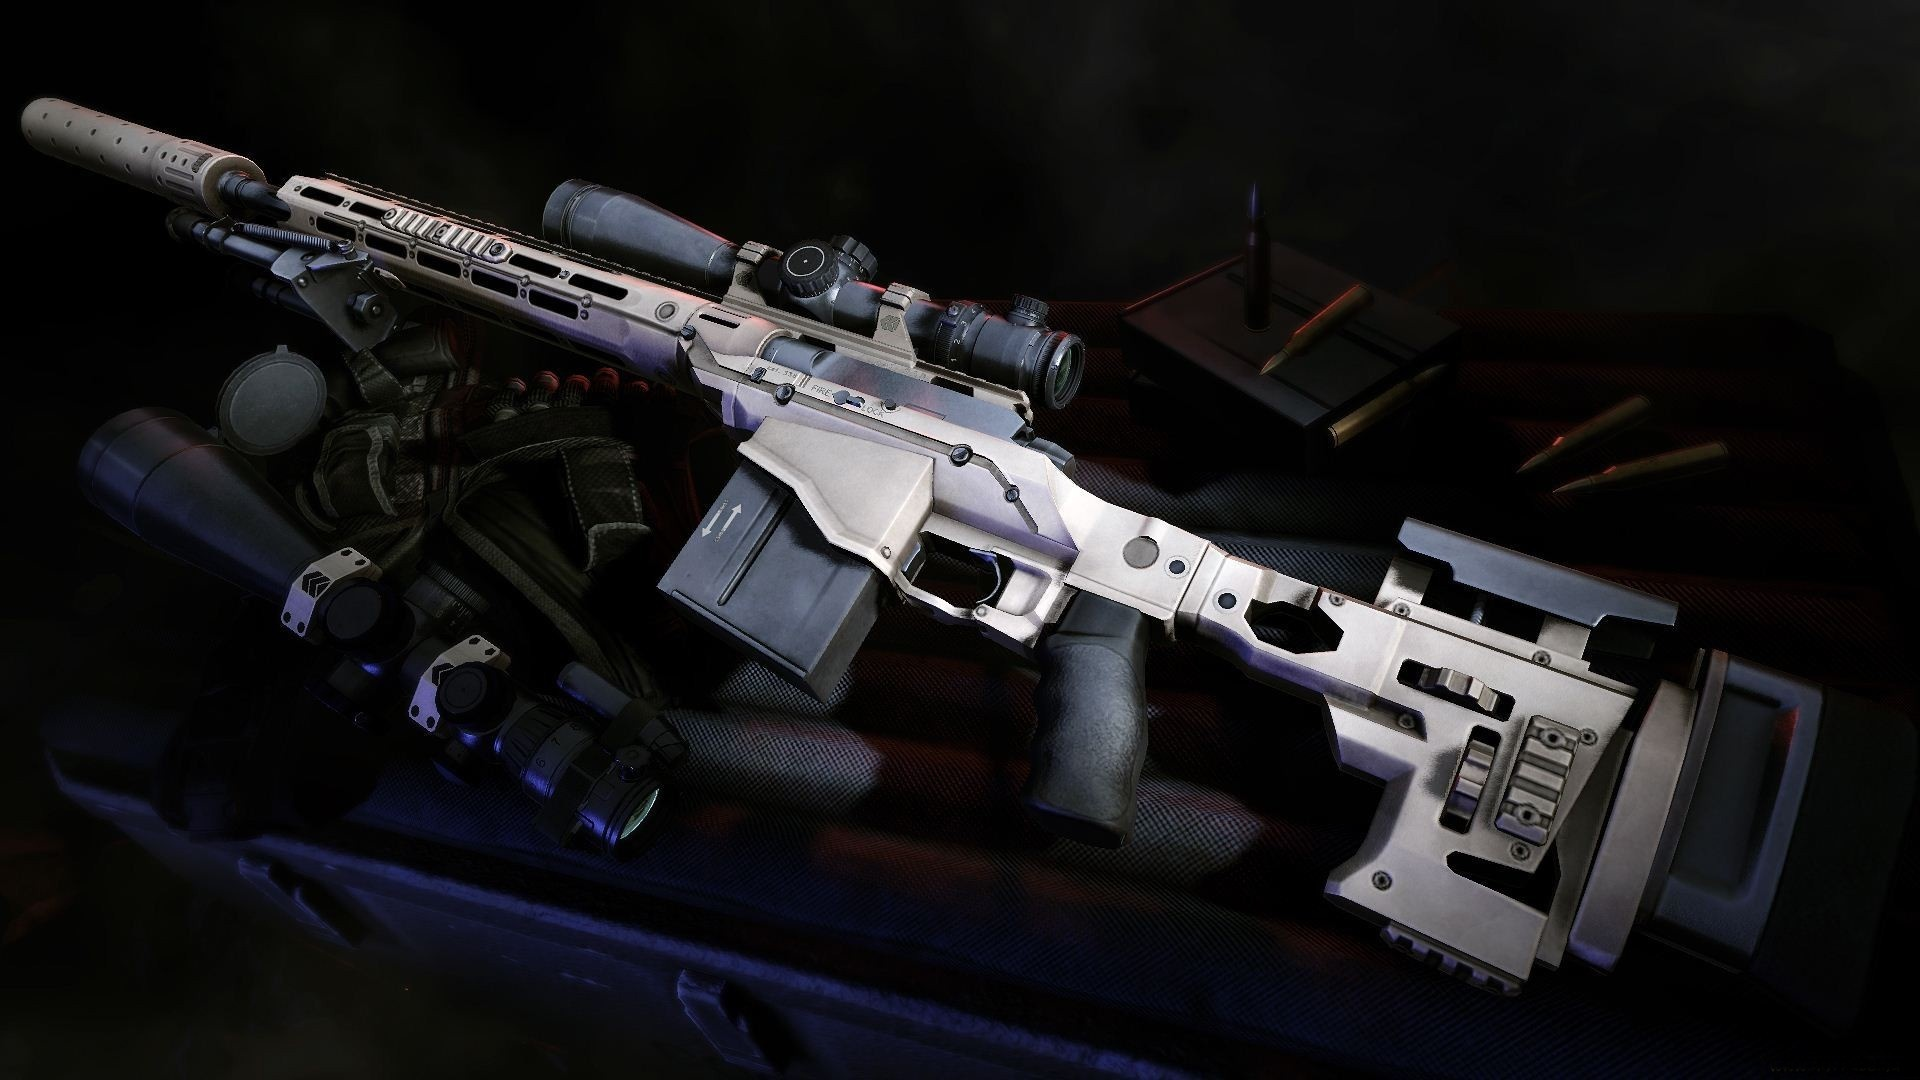 [Image: sniper-rifle-wallpaper-44088-45192-hd-wallpapers.jpg]